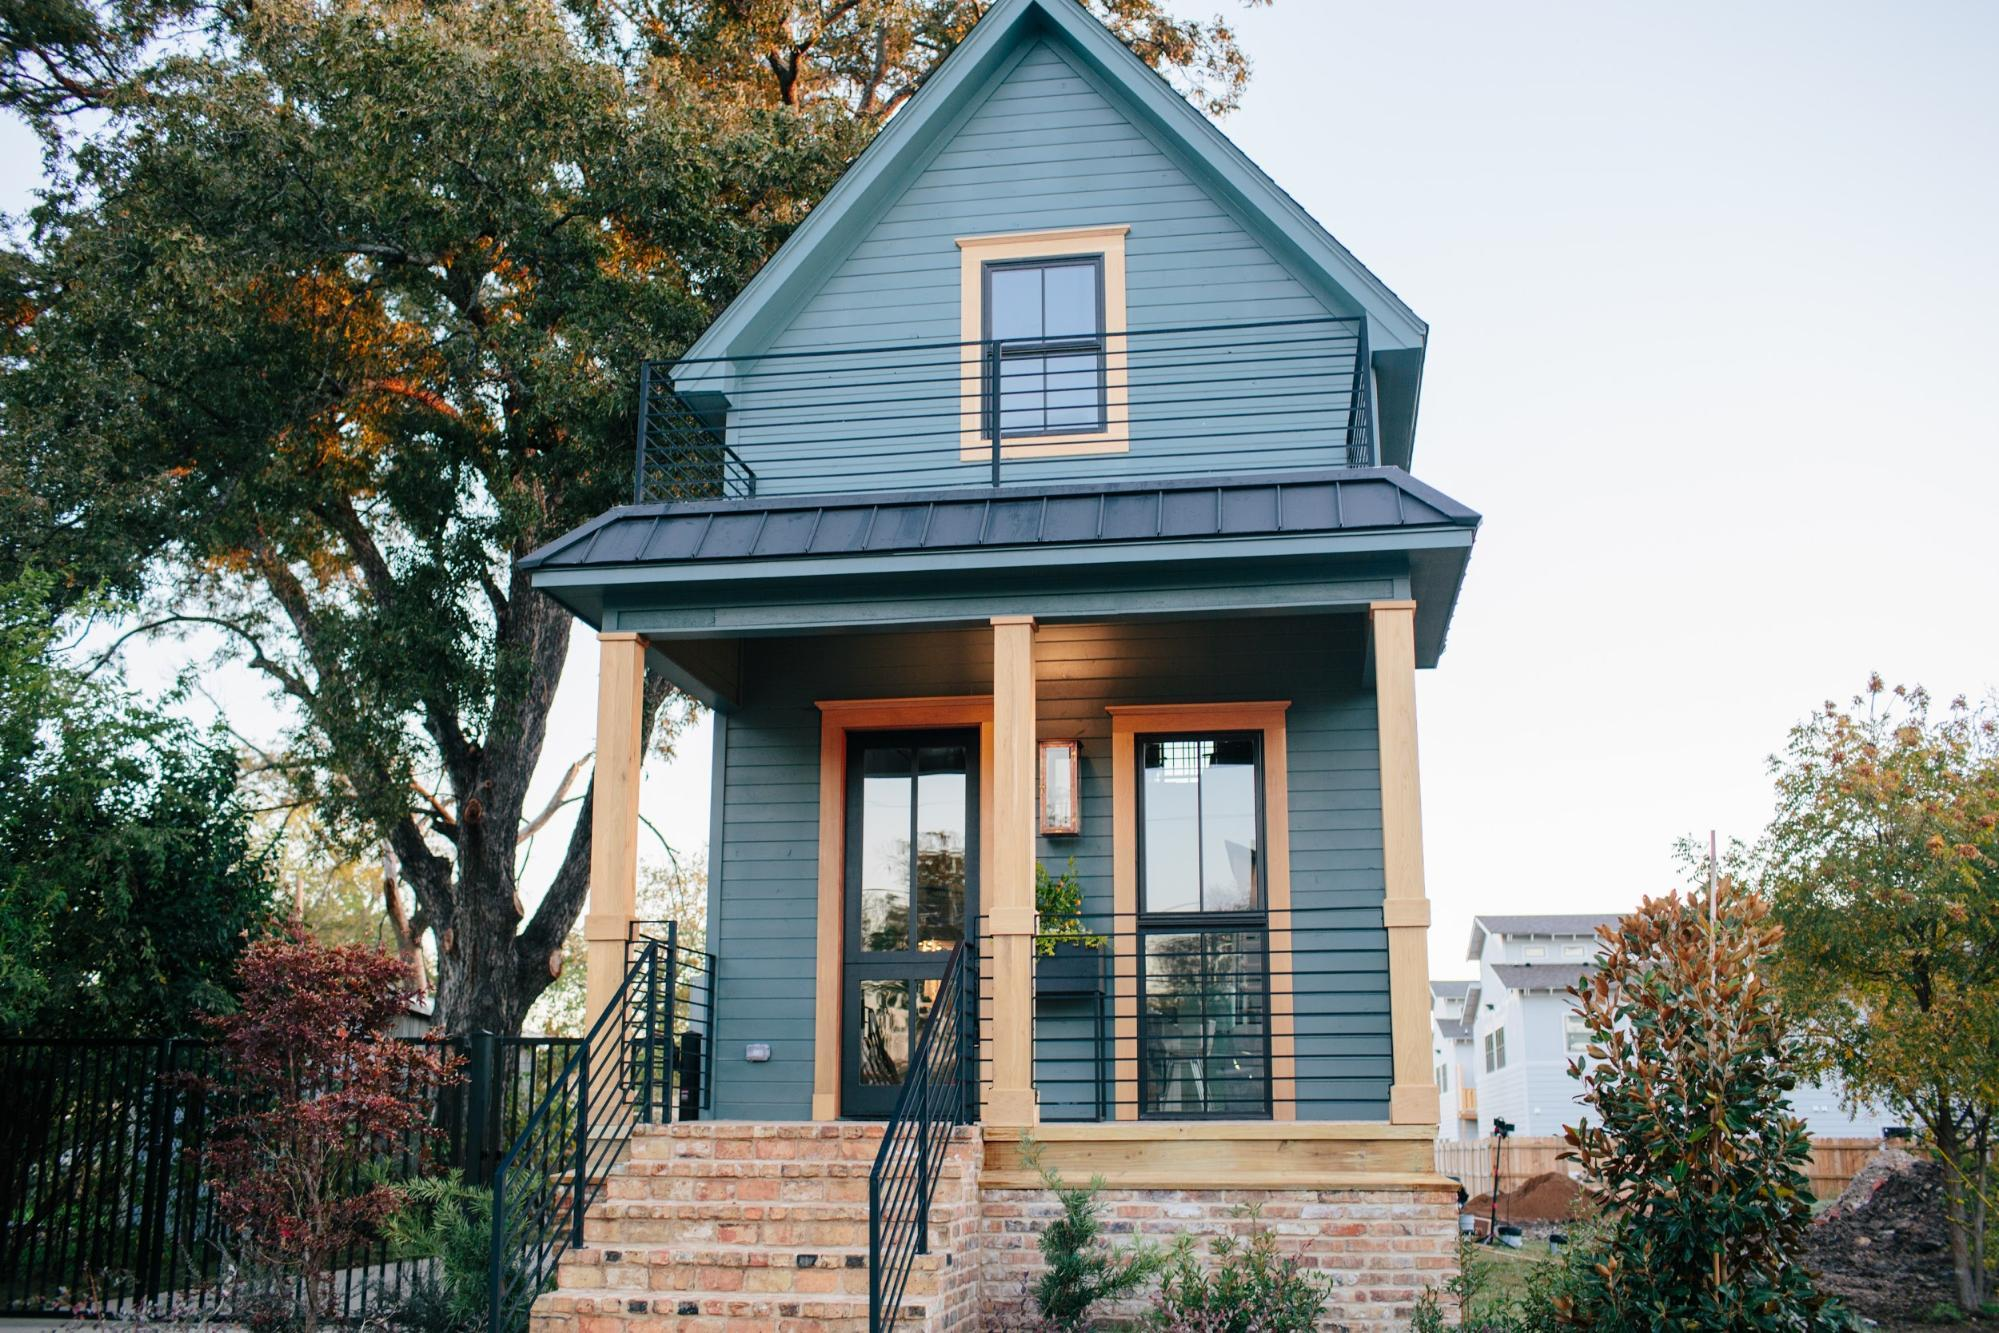 Fixer Upper | Season 3 Episode 14 | The Shotgun House on